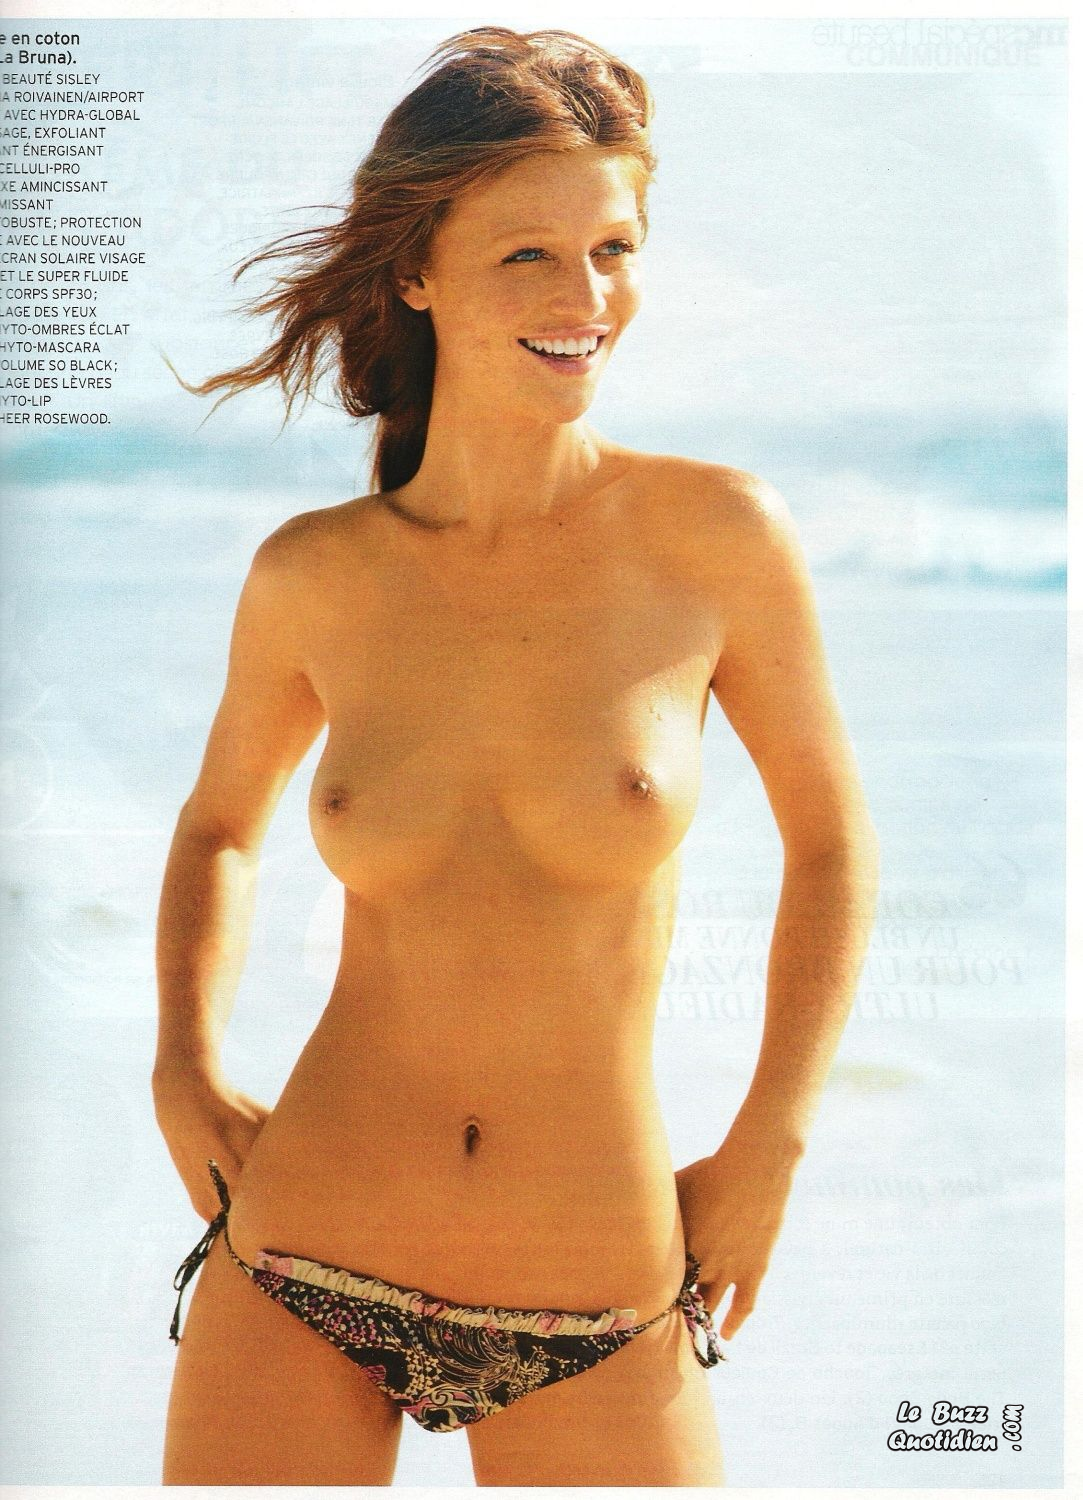 Cintia Dicker topless